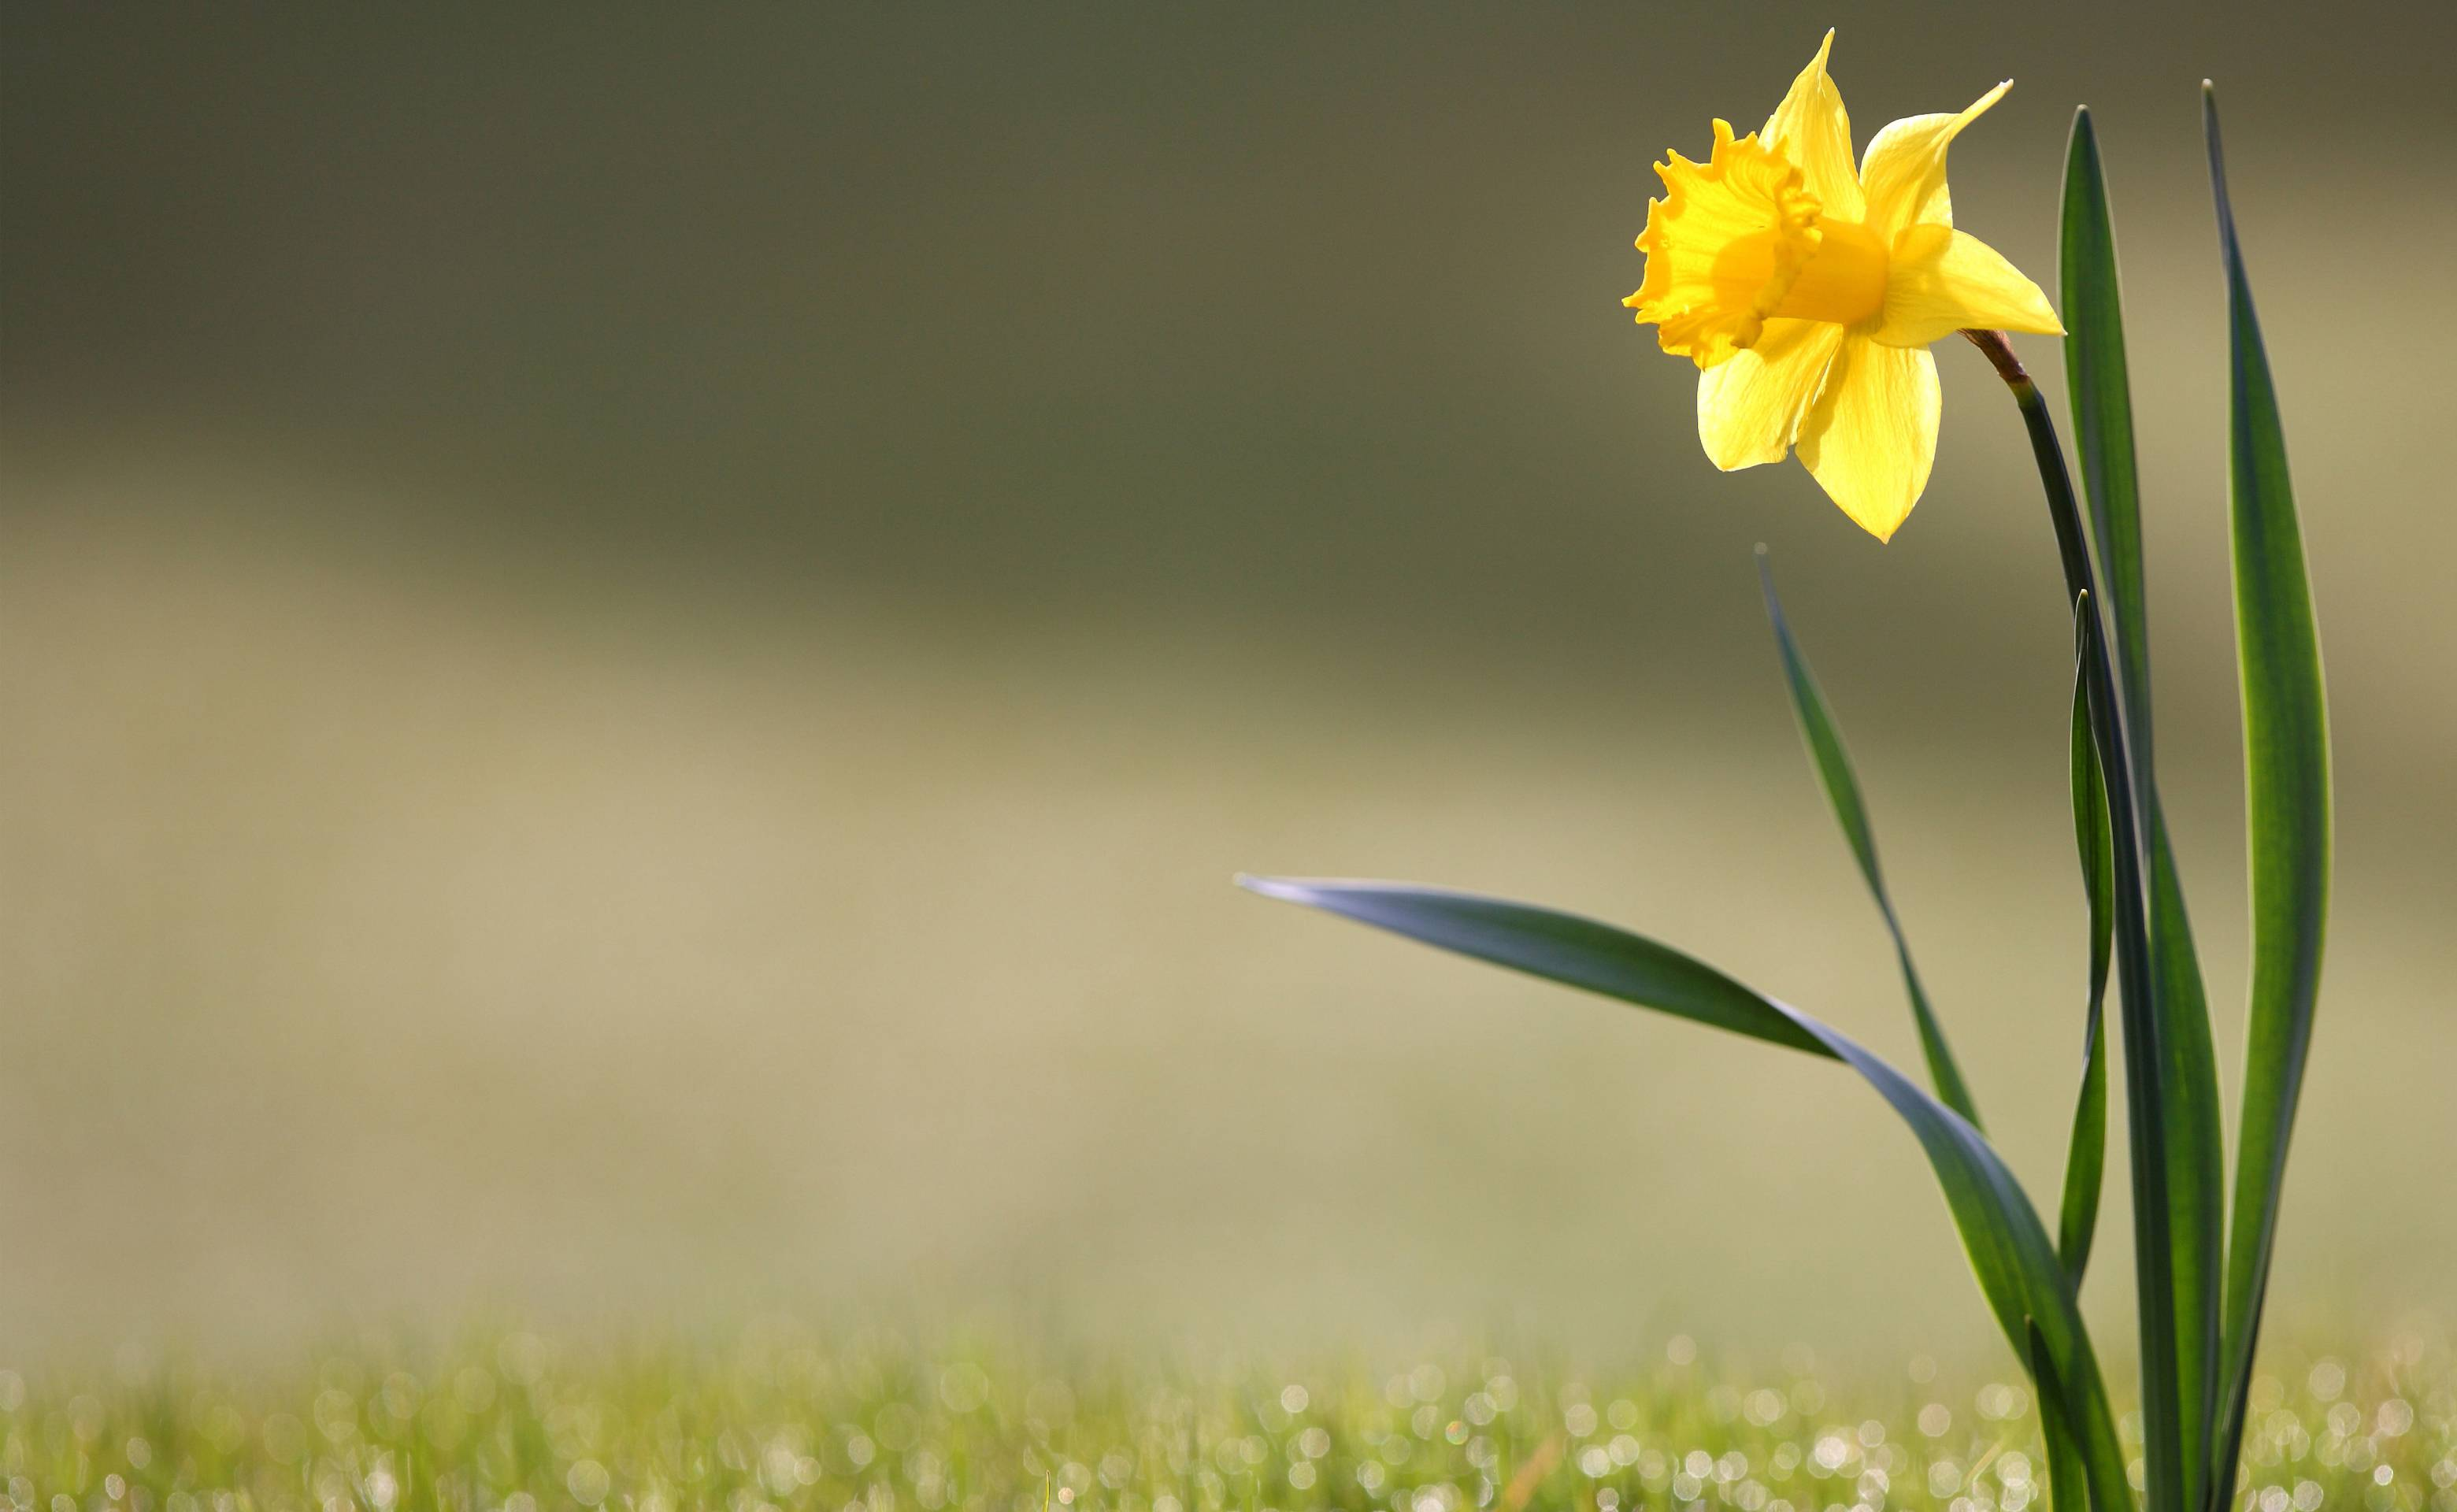 daffodil wallpapers - wallpaper cave